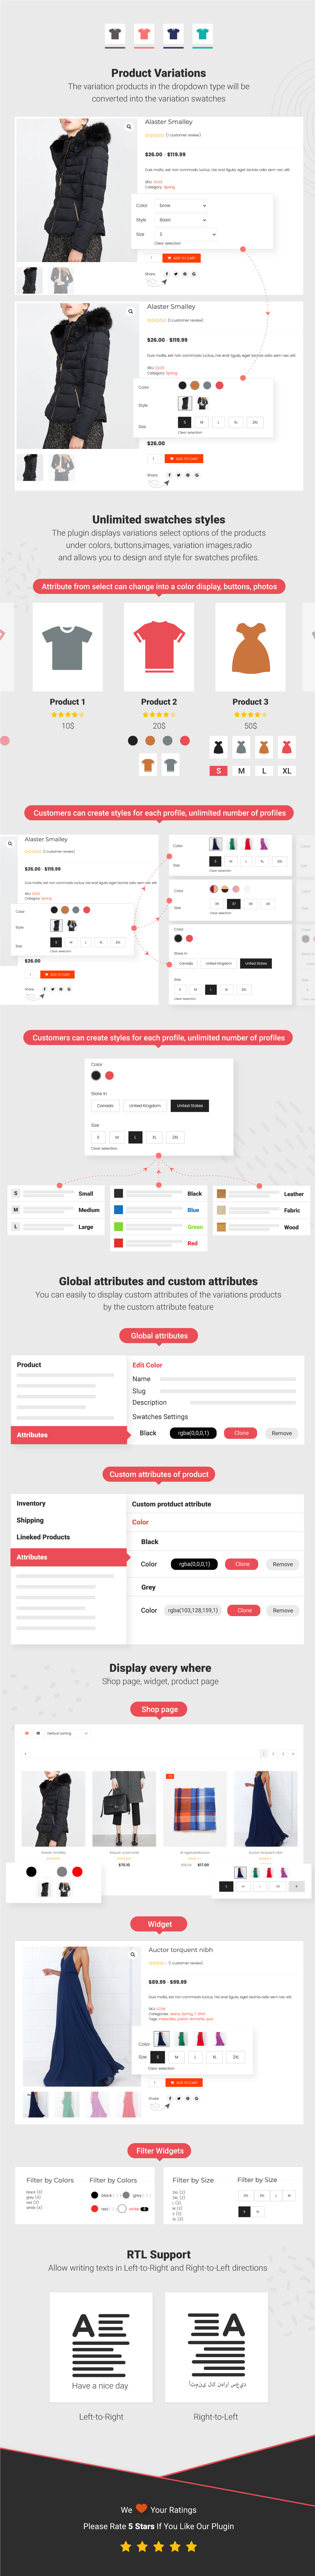 Infographic WooCommerce Product Variations Swatches